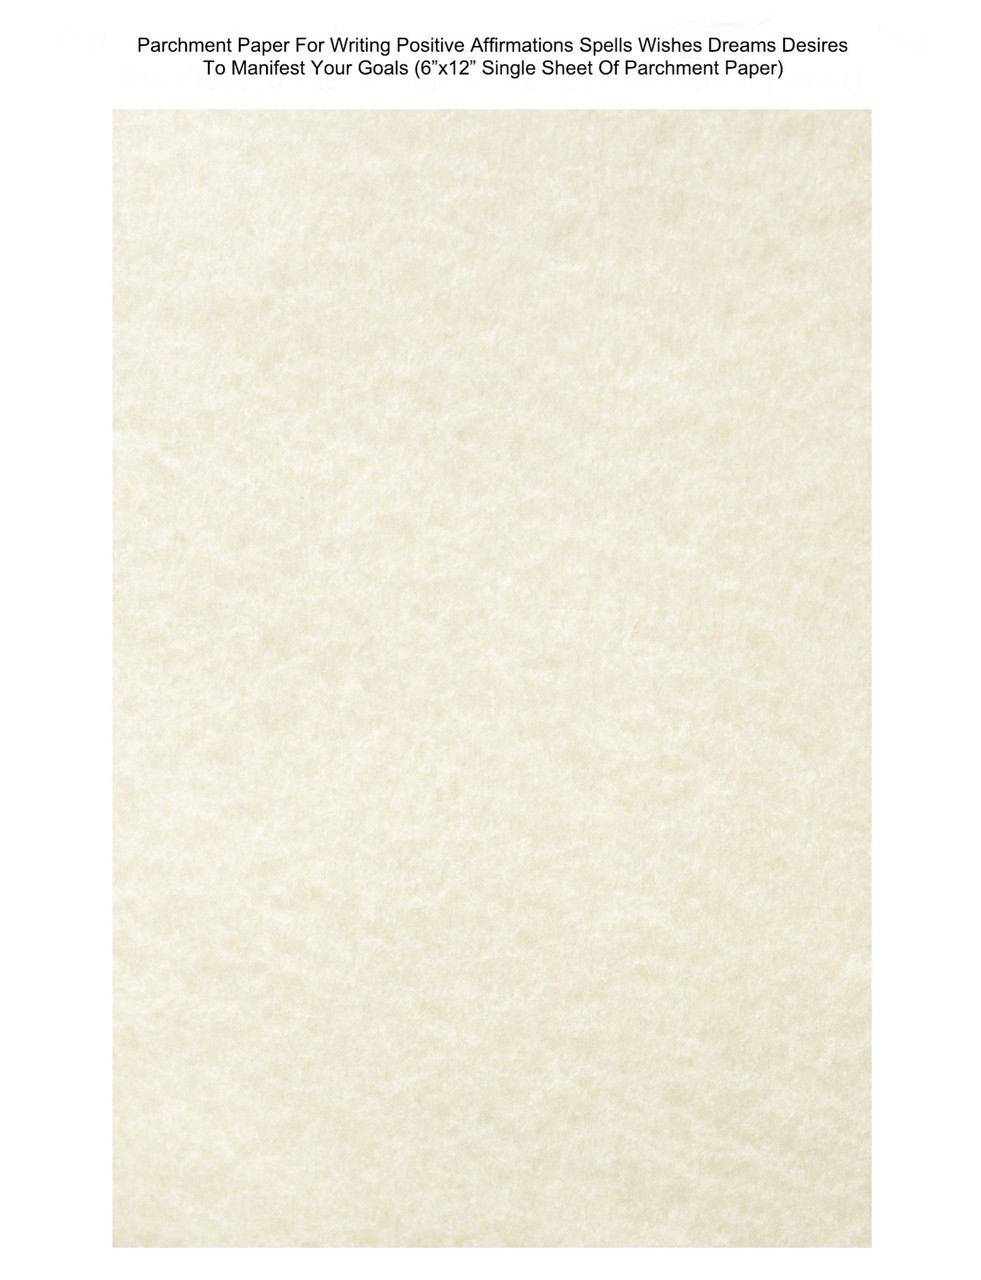 """Parchment Paper For Writing Positive Affirmations Spells Wishes Dreams  Desires To Manifest Your Goals (6""""x12"""" Single Sheet Of Parchment Paper)"""